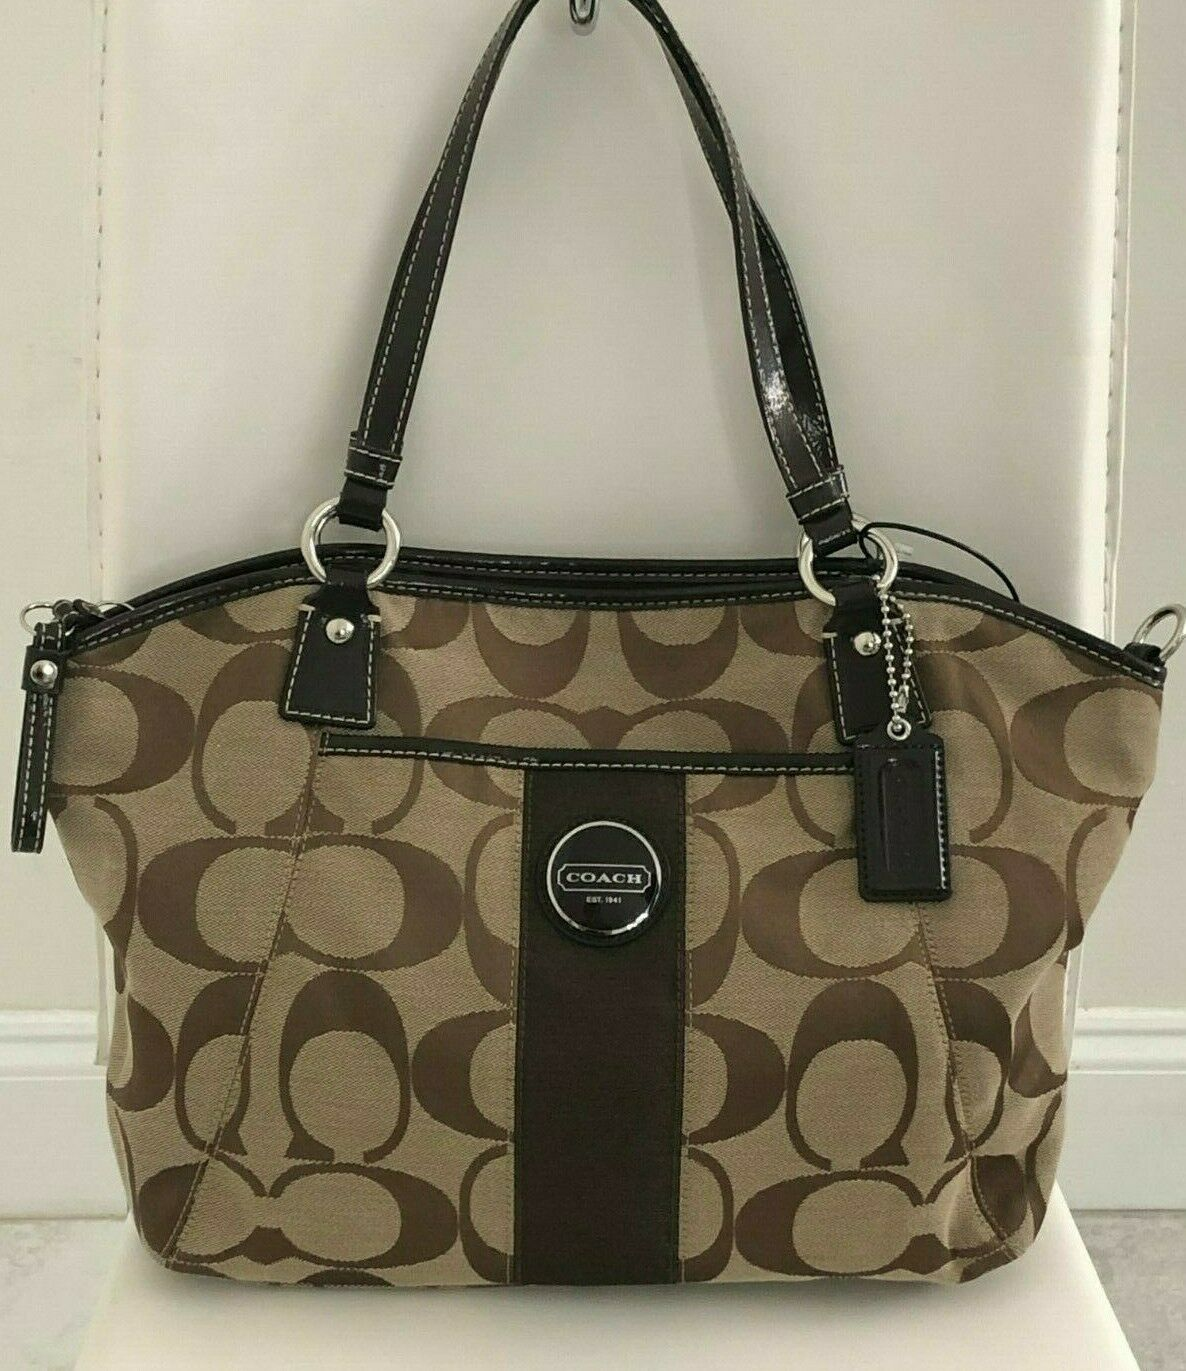 Primary image for COACH Brown Monogram Canvas w/ Patent Leather Satchel/Shoulder/Tote Bag $298